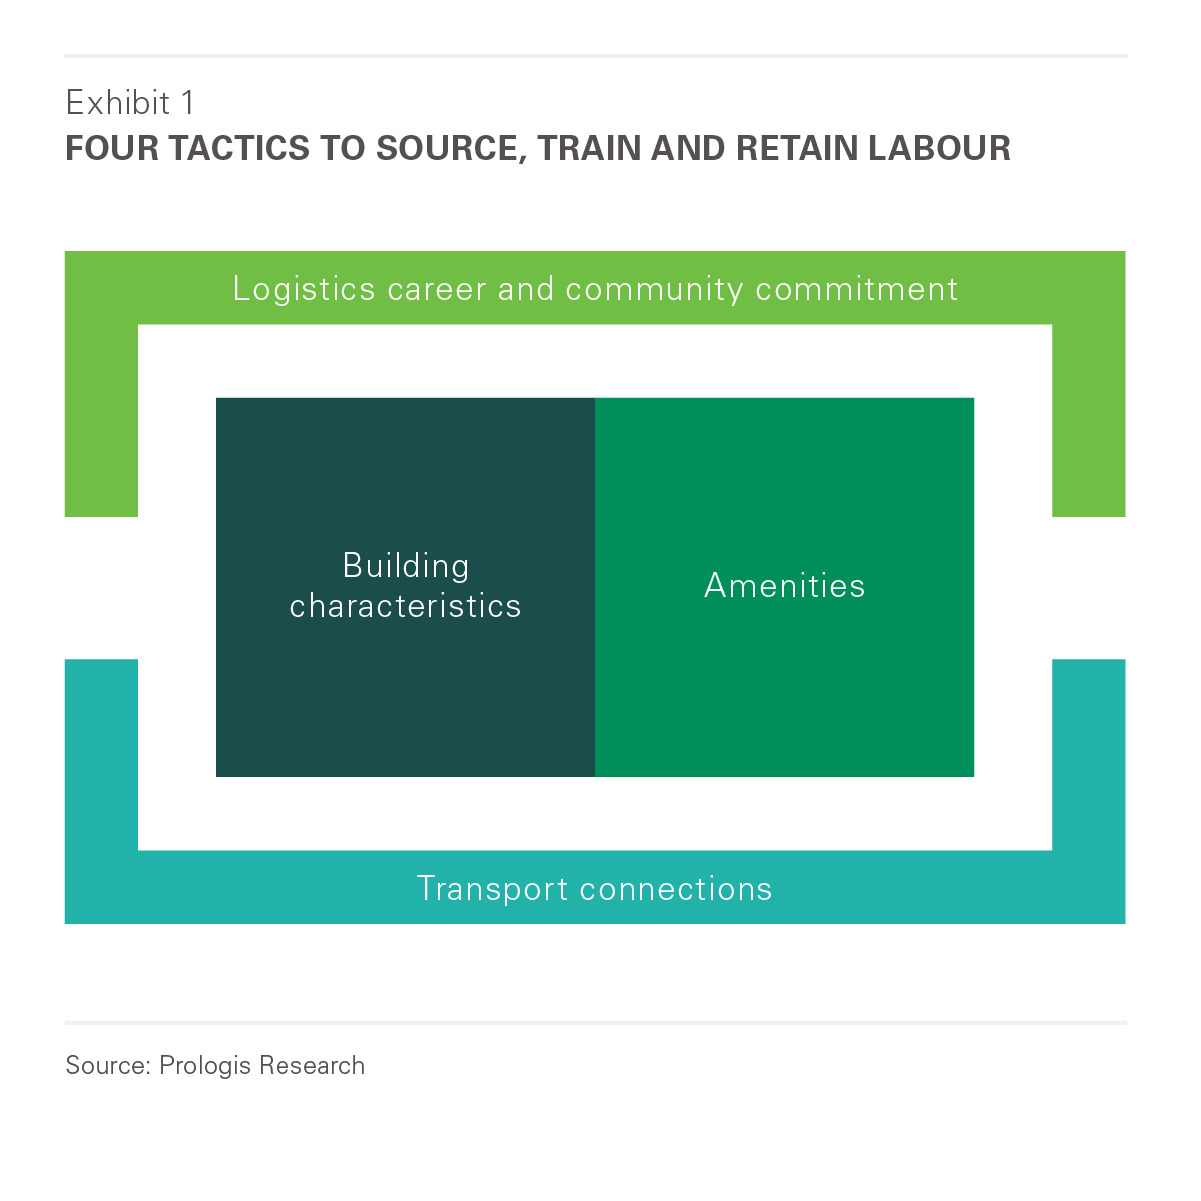 Four Tactics to Source, Train, and Retain Labour